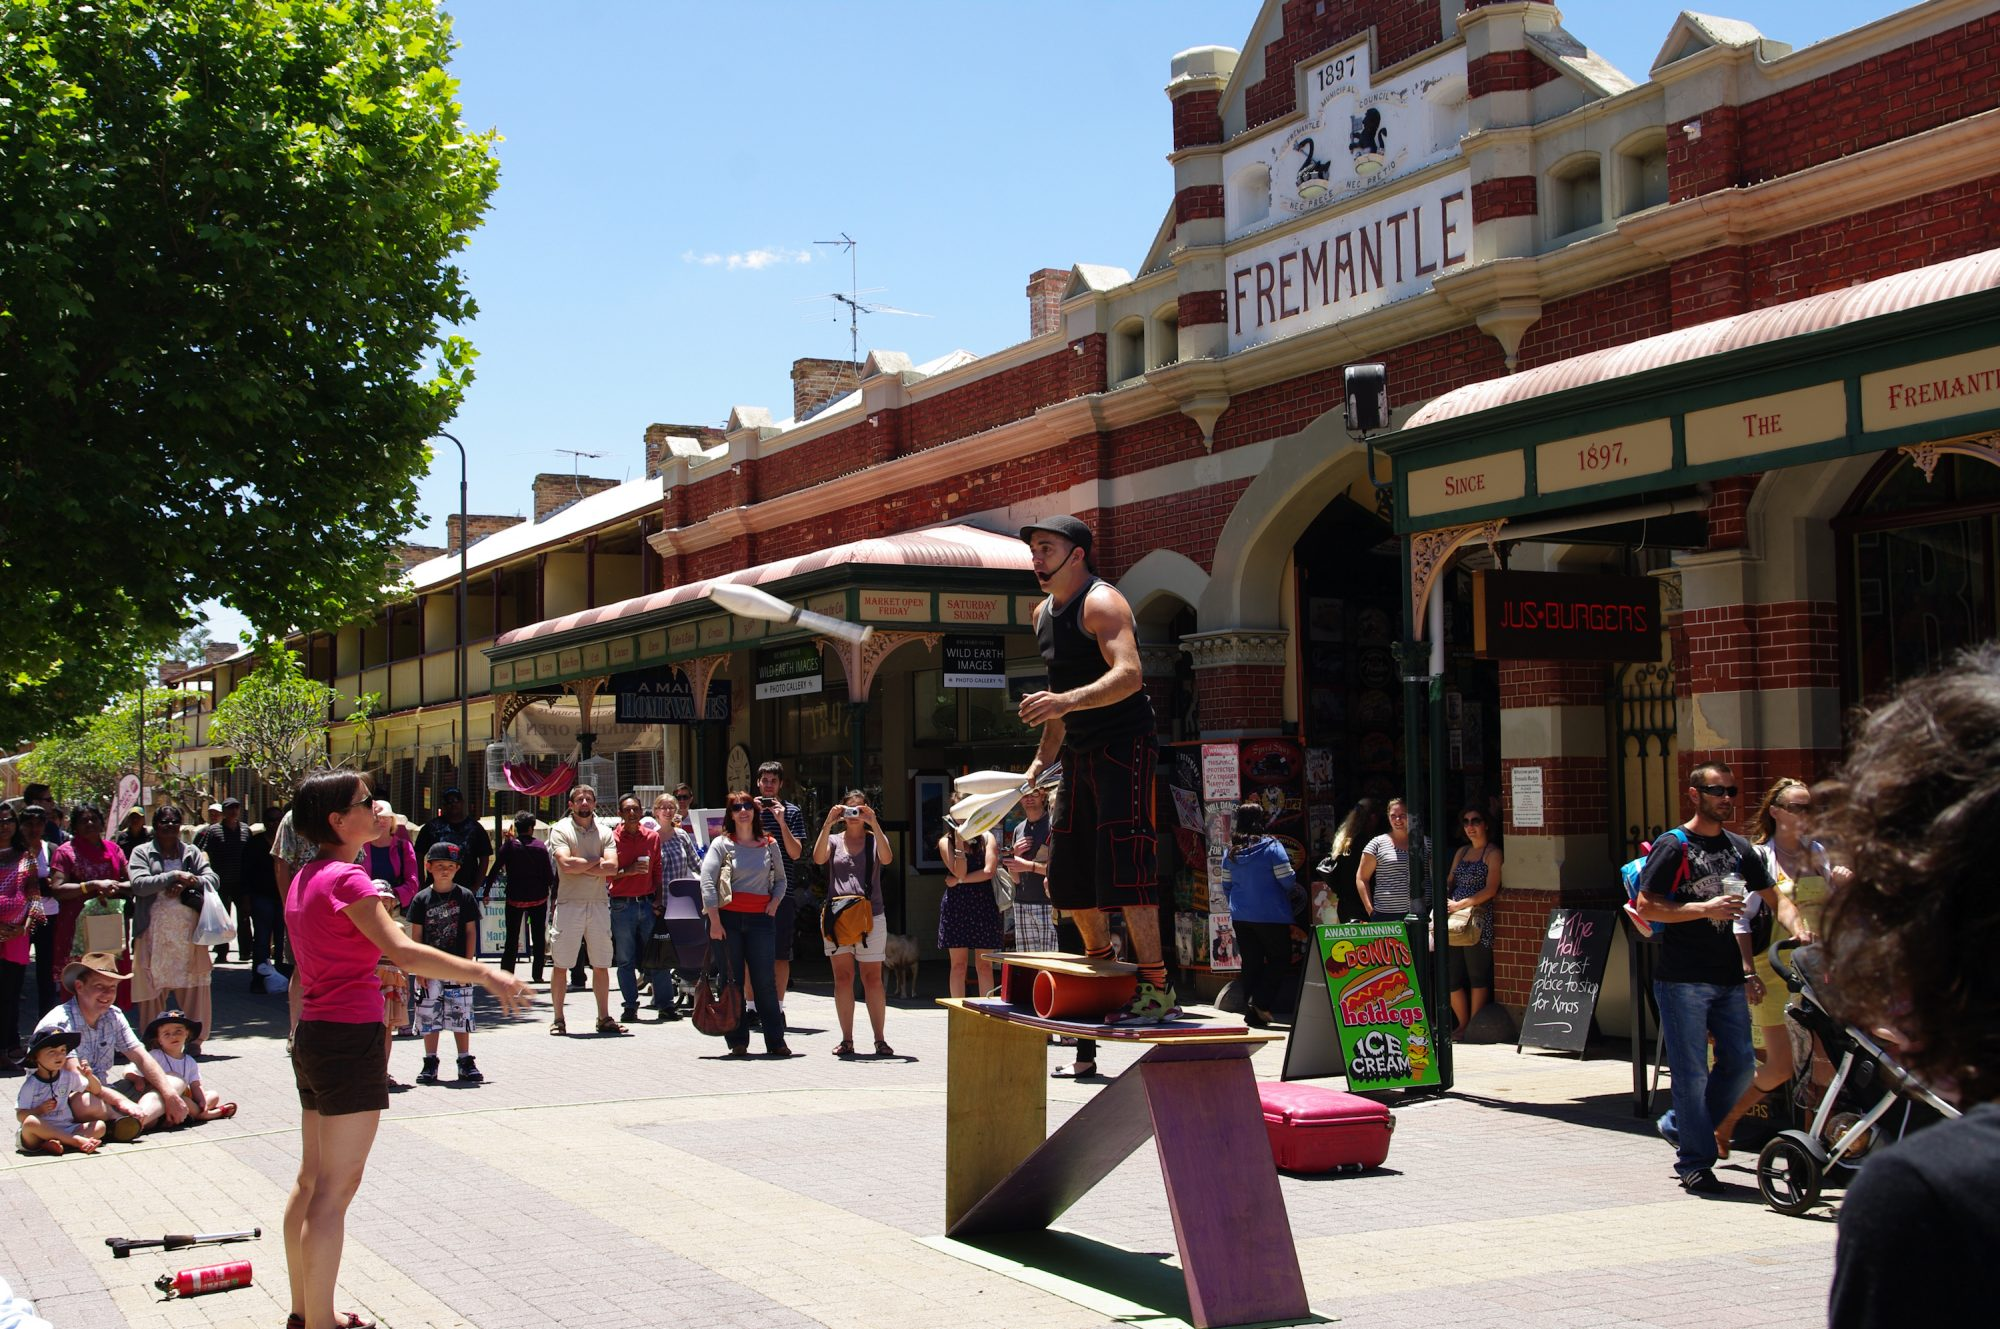 stay at callans apartments and visit the fremantle markets